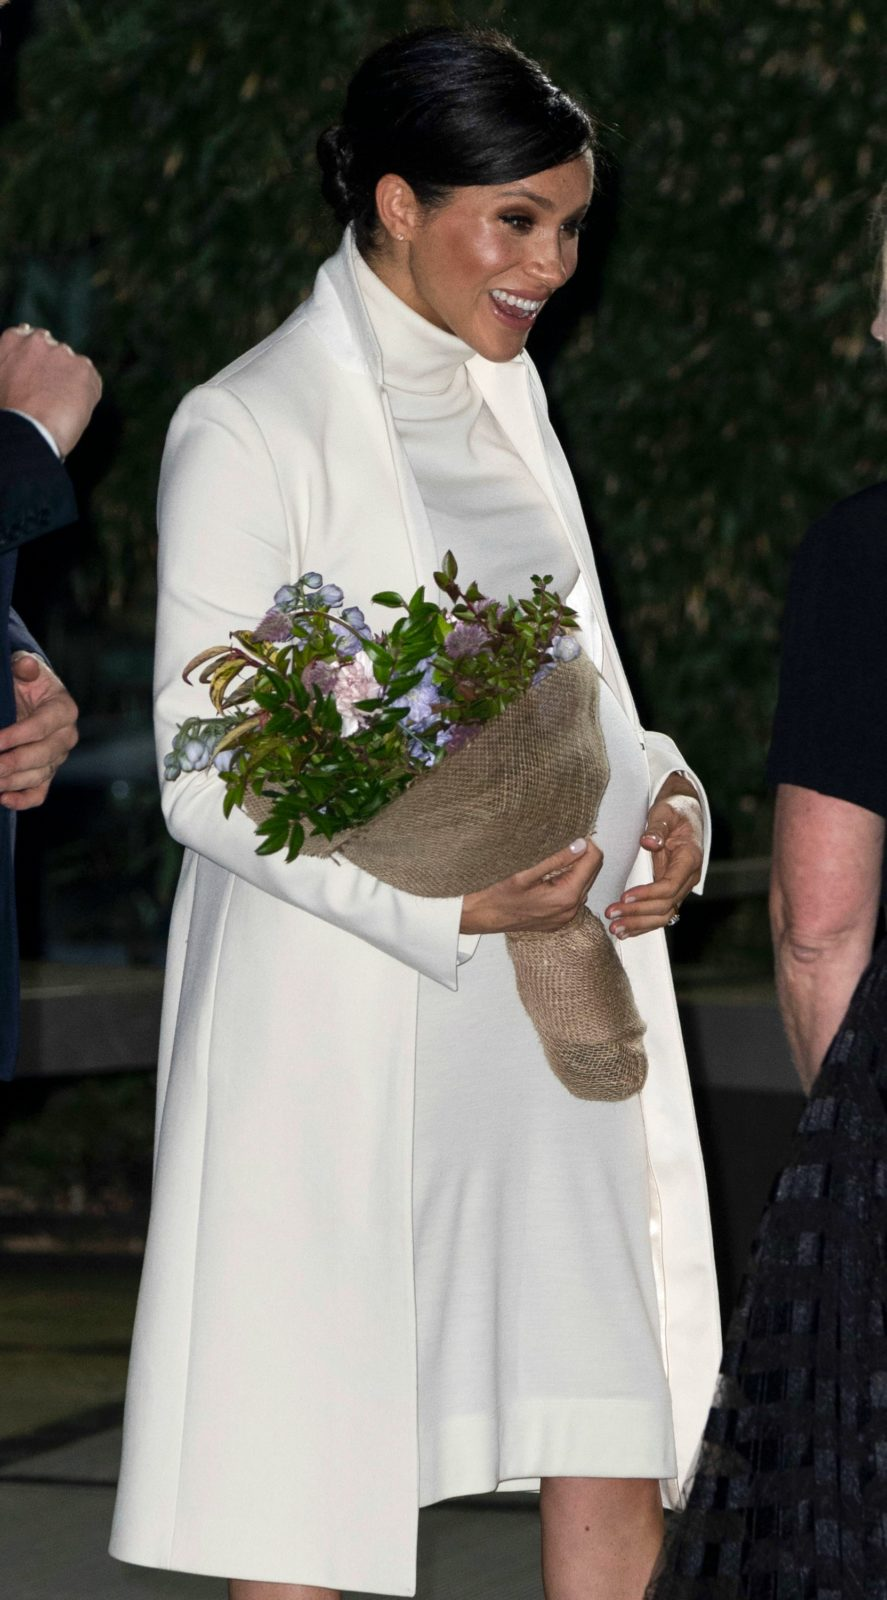 The Duchess of Sussex was presented with a bouquet of flowers. Source: Getty.